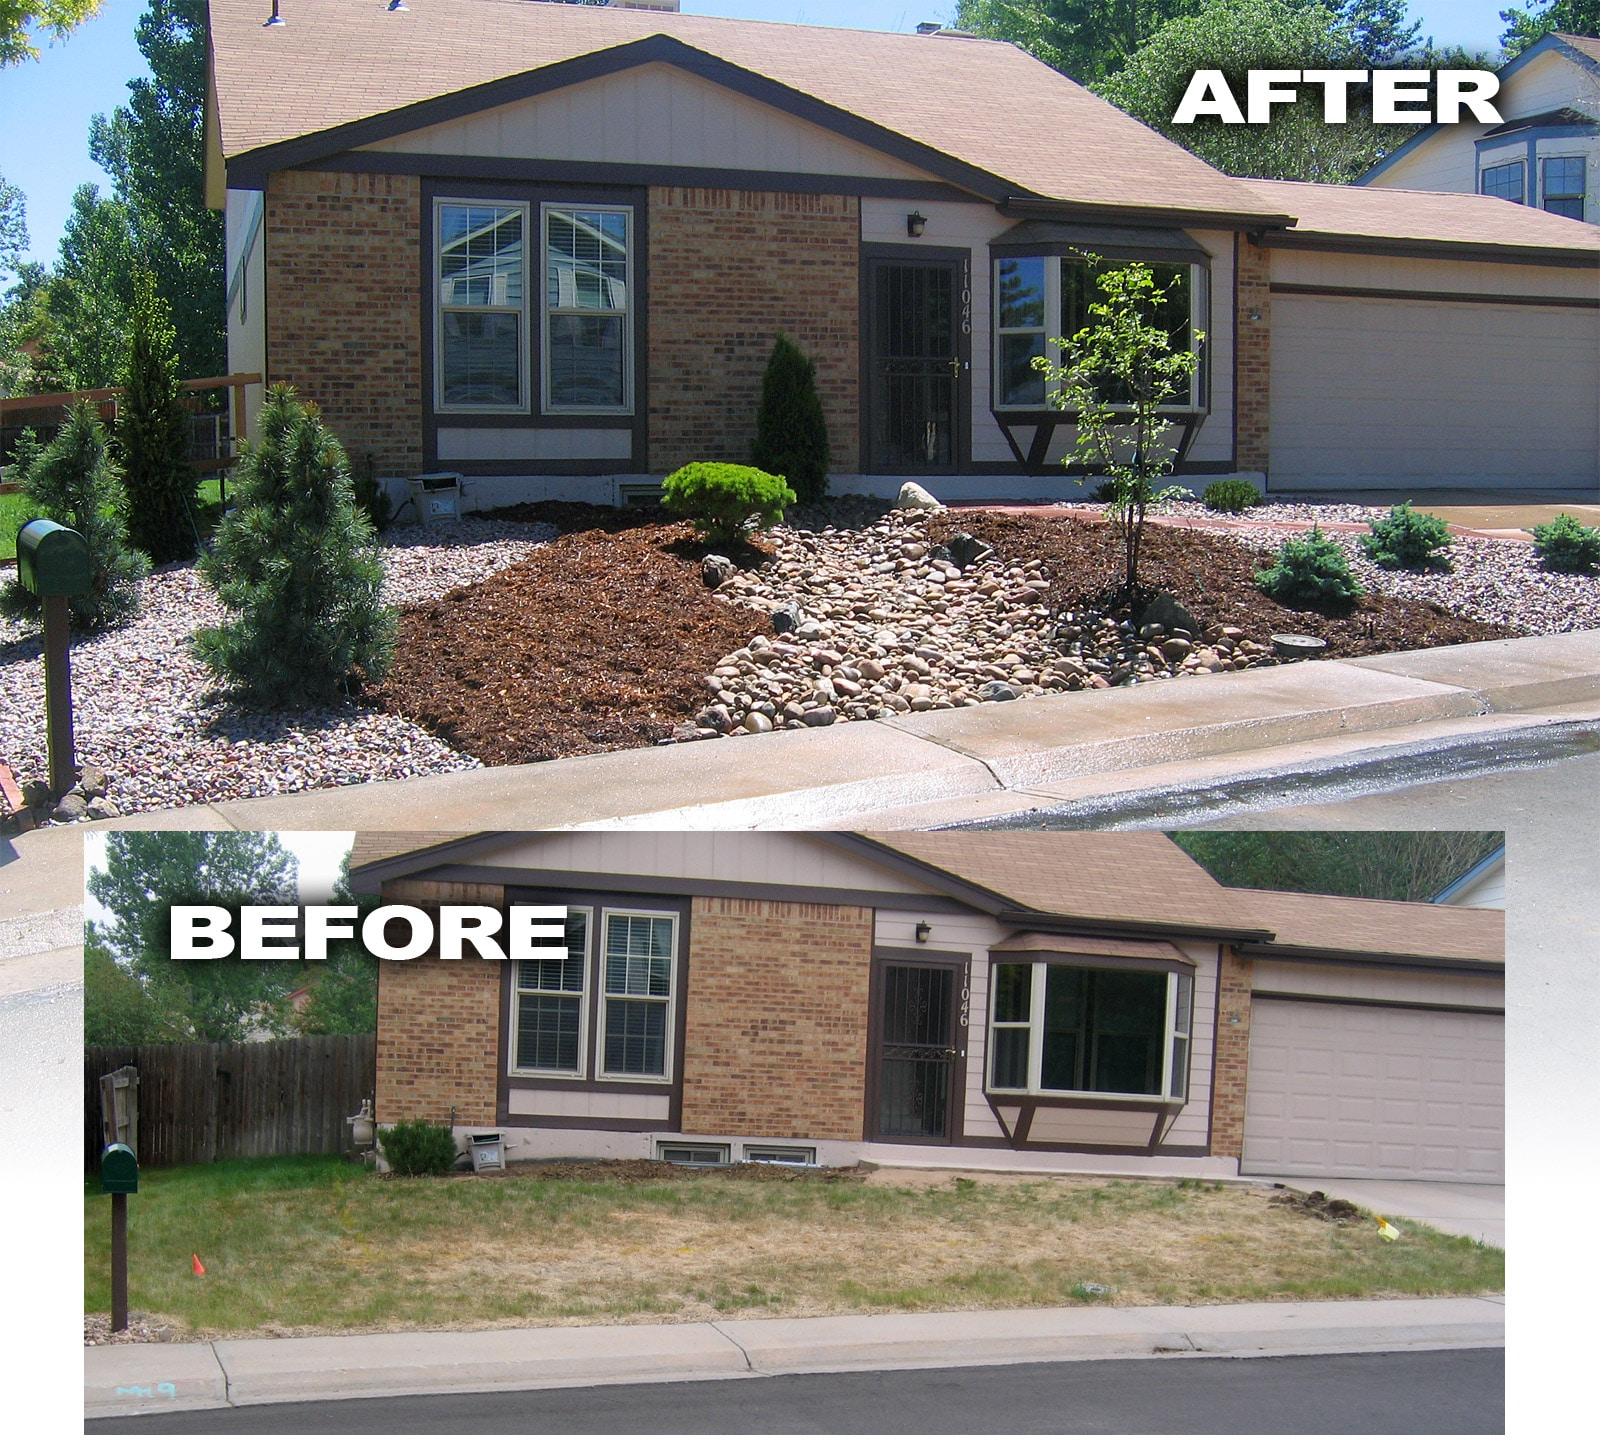 Before And After Home Makeovers: Ryno Lawn Care, LLC